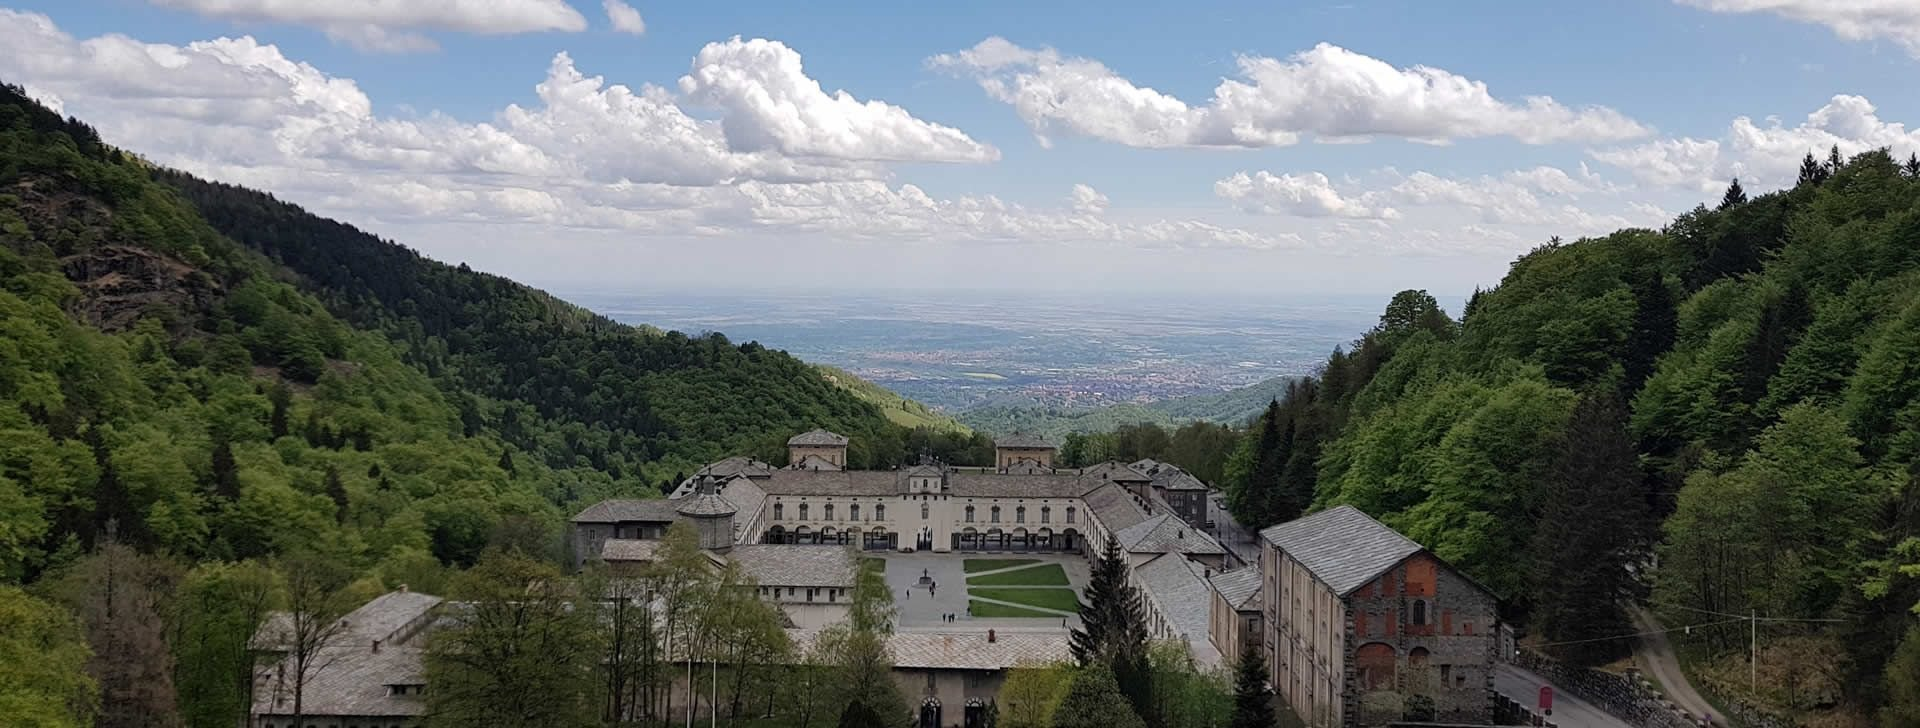 Oropa panorama a valle